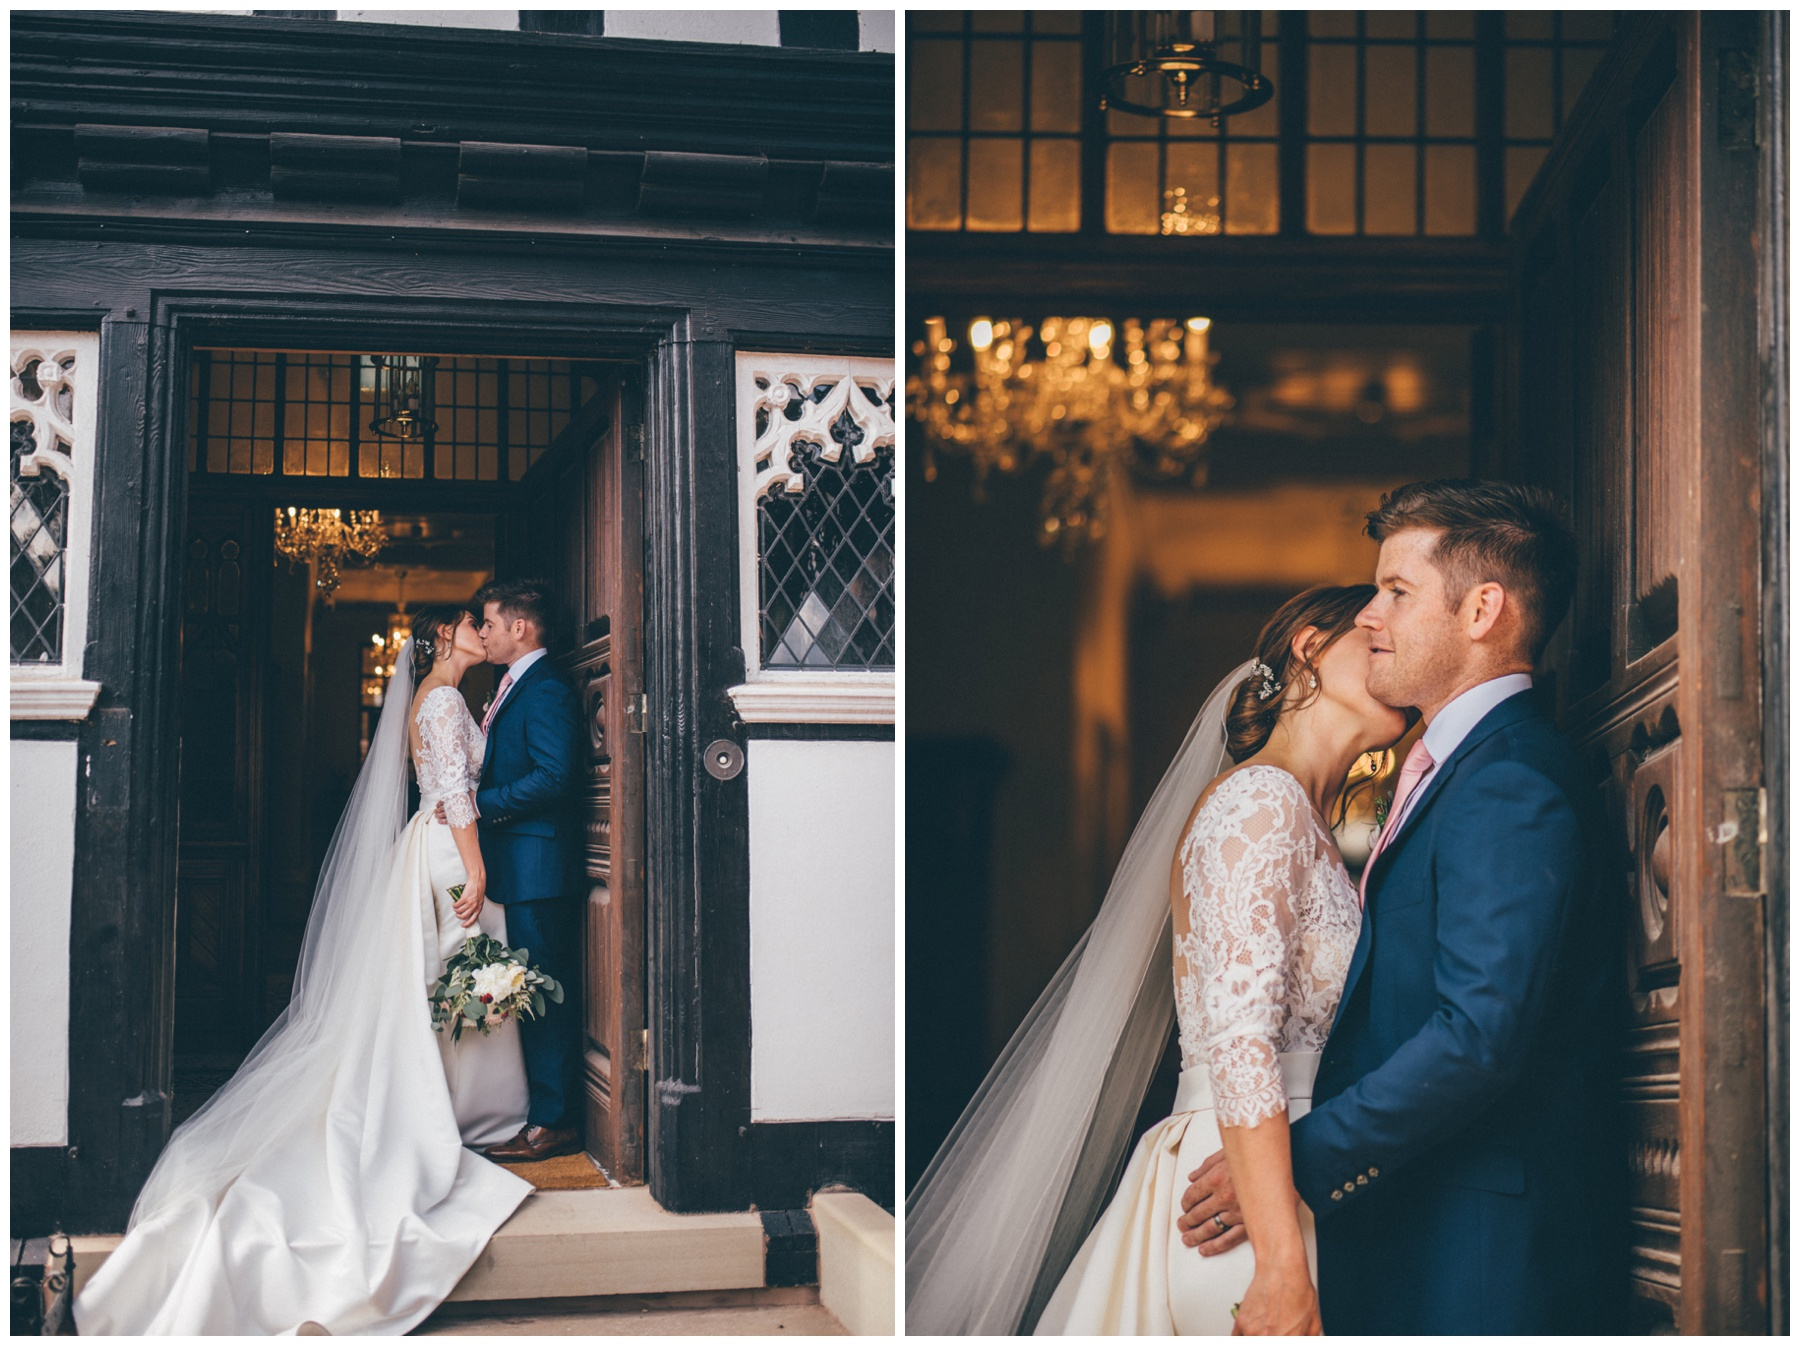 Bride and Groom have their wedding photographs taken at Tilstone House in Cheshire.